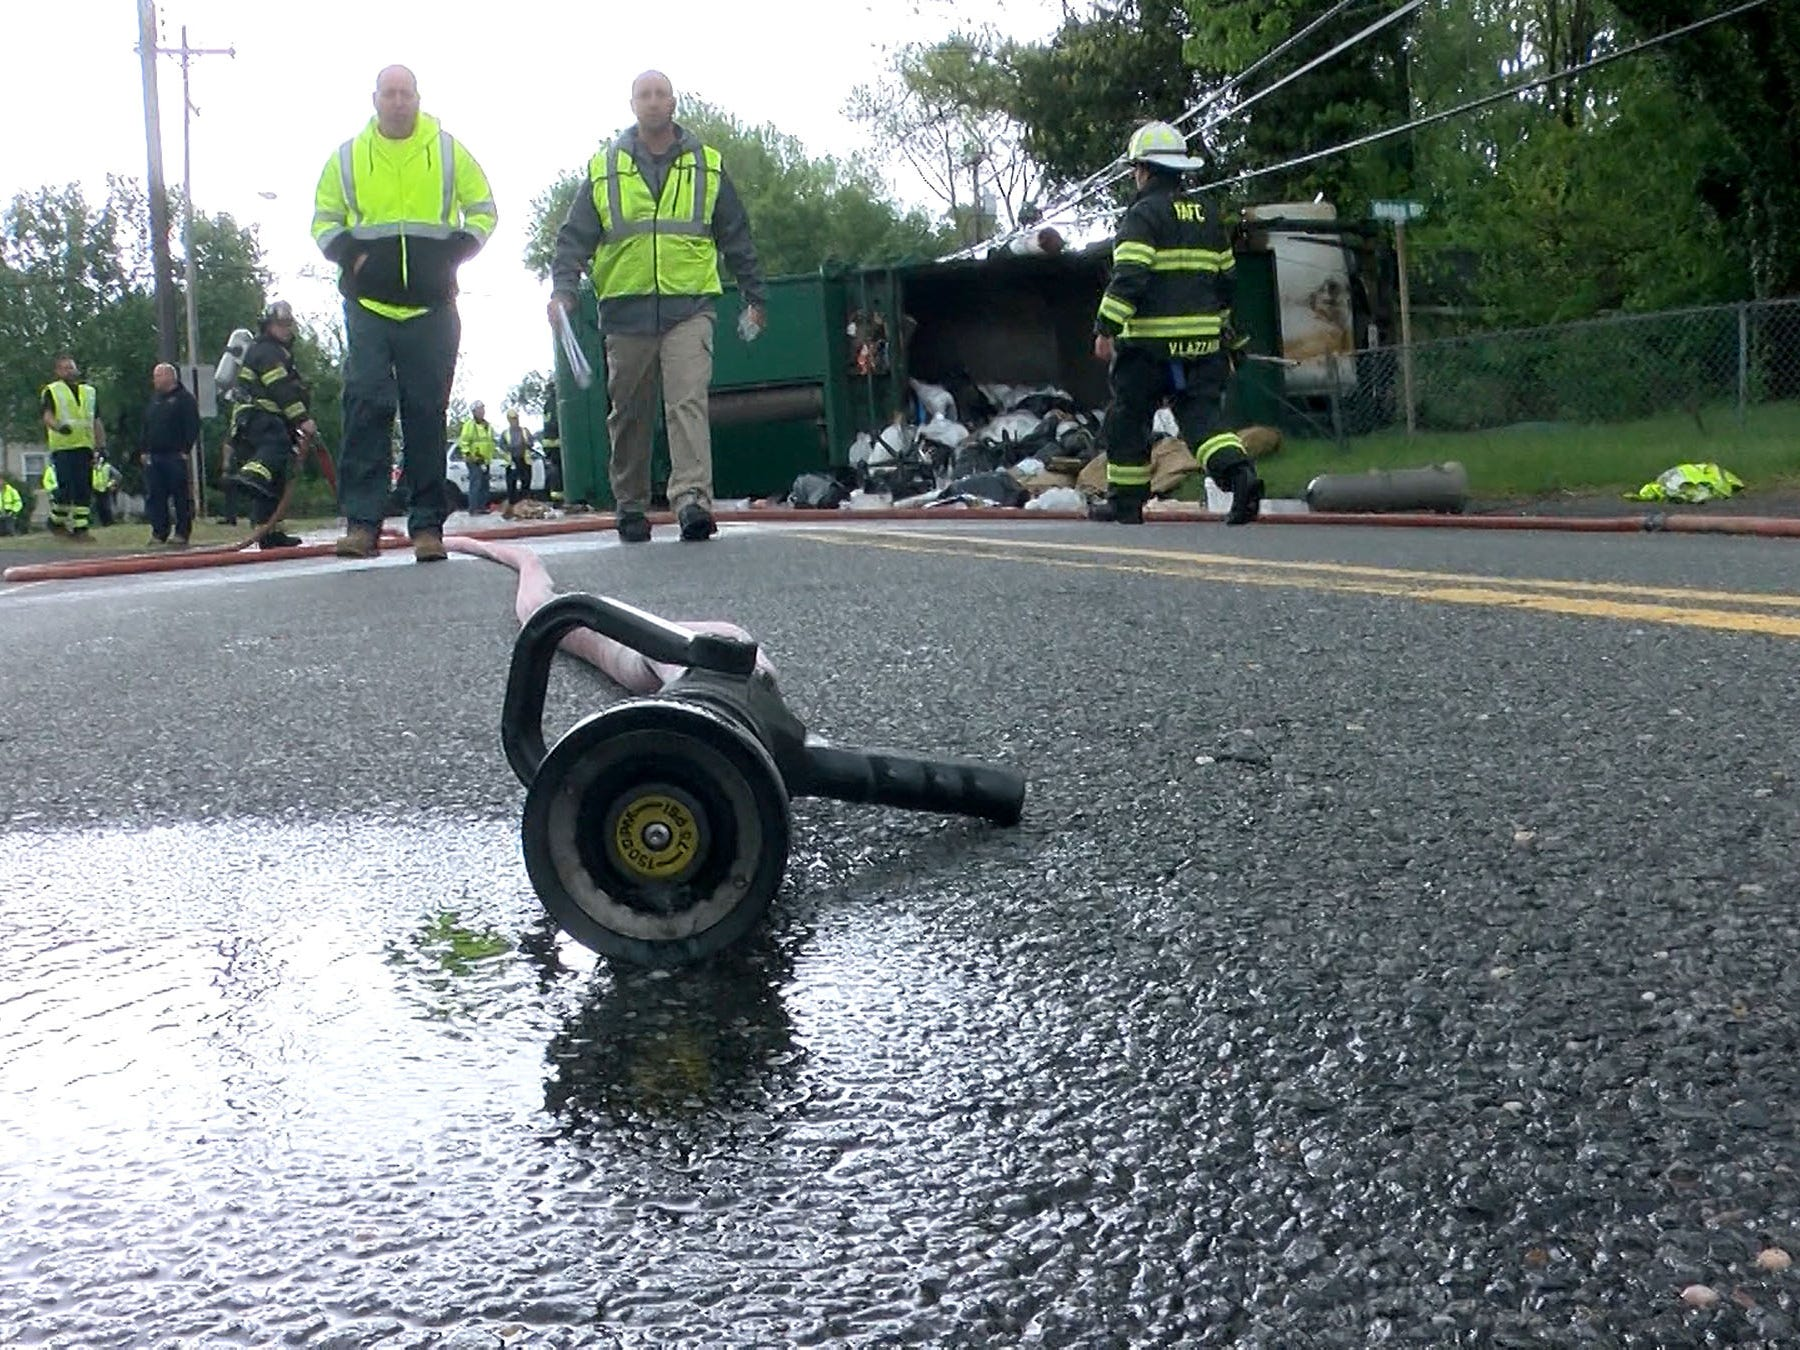 A hose drains in the street near a Waste Management garbage truck that overturned on West Farms Road at Casino Drive in Howell Township Tuesday morning, May 14, 2019.  At least two people were injured in the collison that spilled garbage on the roadway and cracked a poer pole.